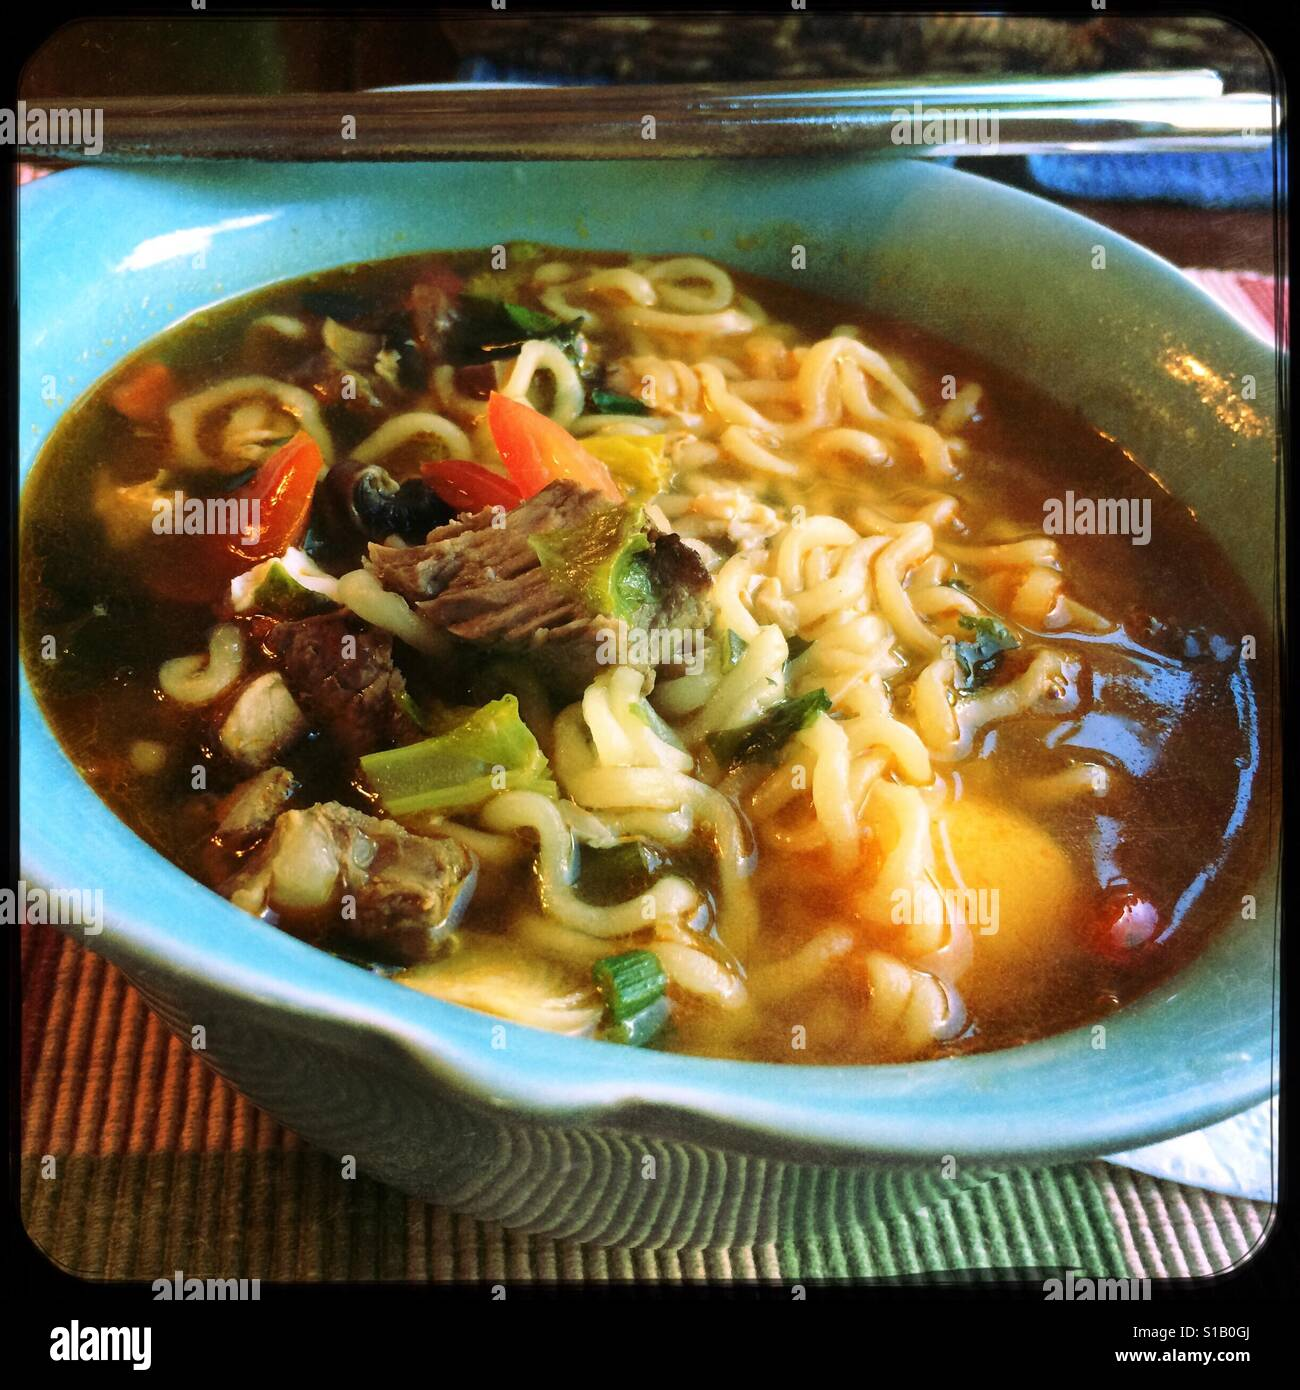 A bowl of homemade spicy beef ramen soup. - Stock Image